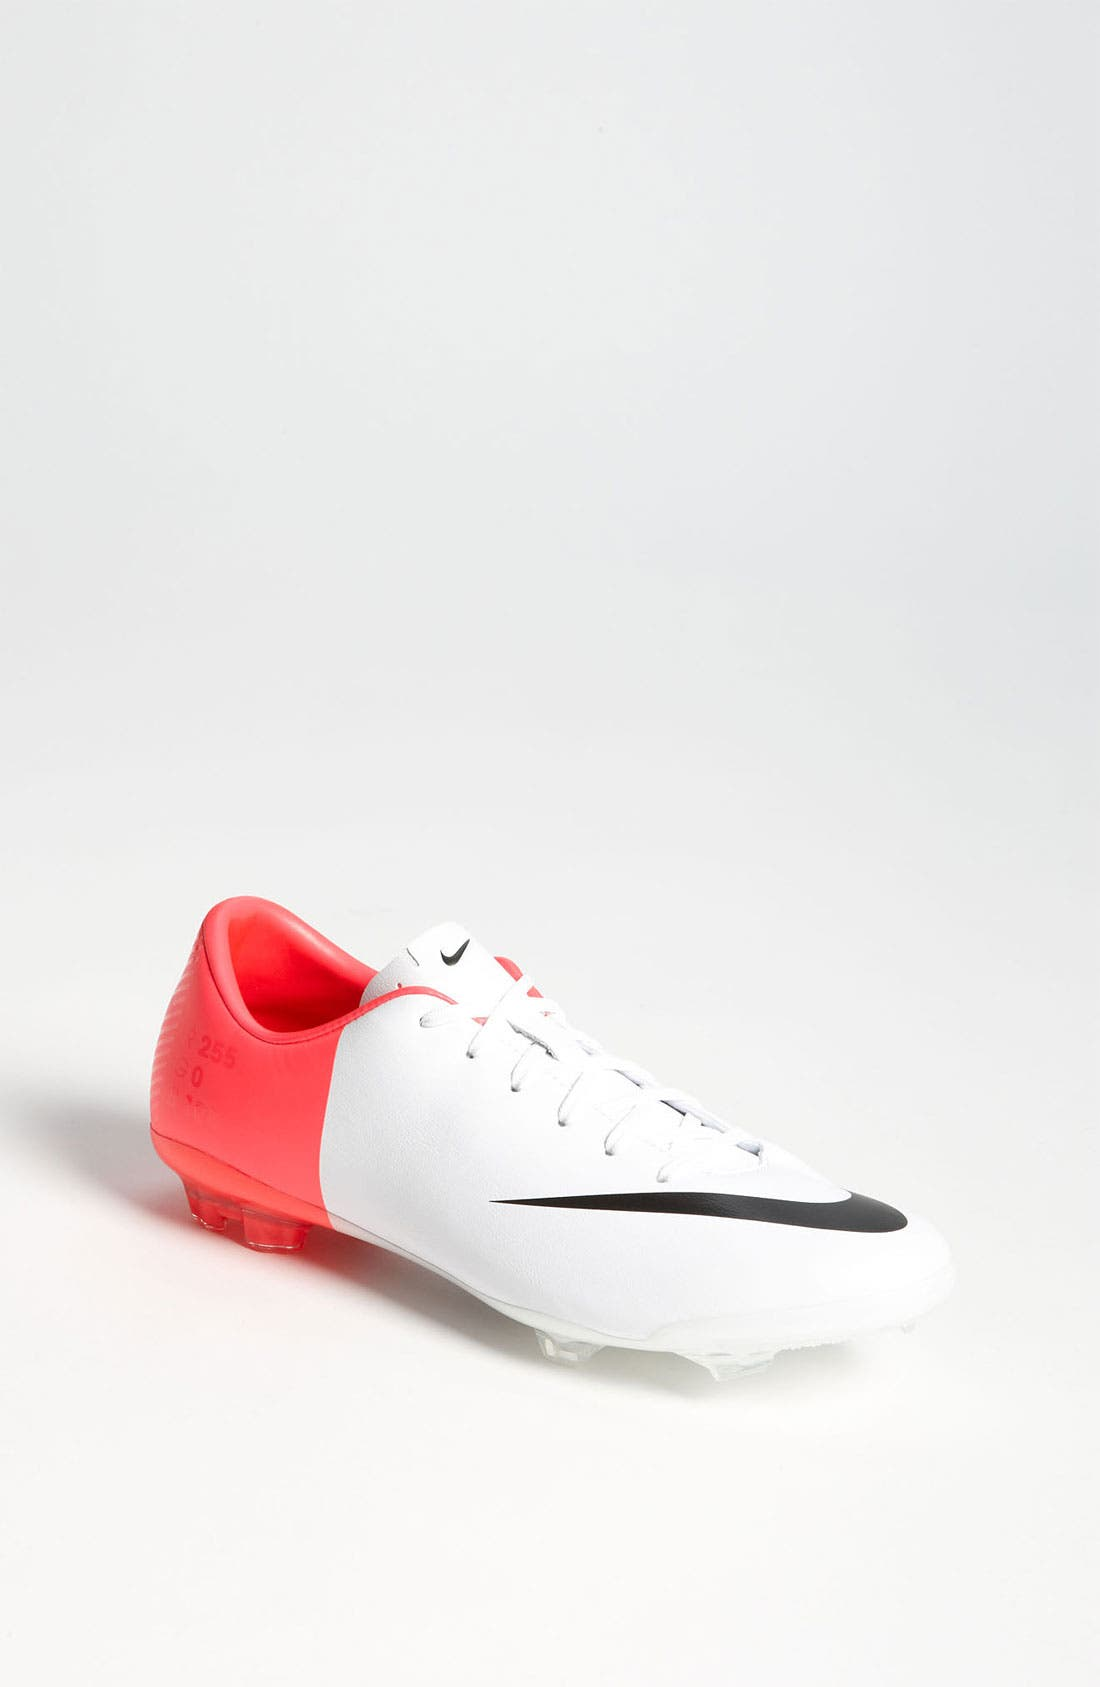 Main Image - Nike 'Mercurial Vapor VIII' Soccer Shoe (Little Kid & Big Kid)